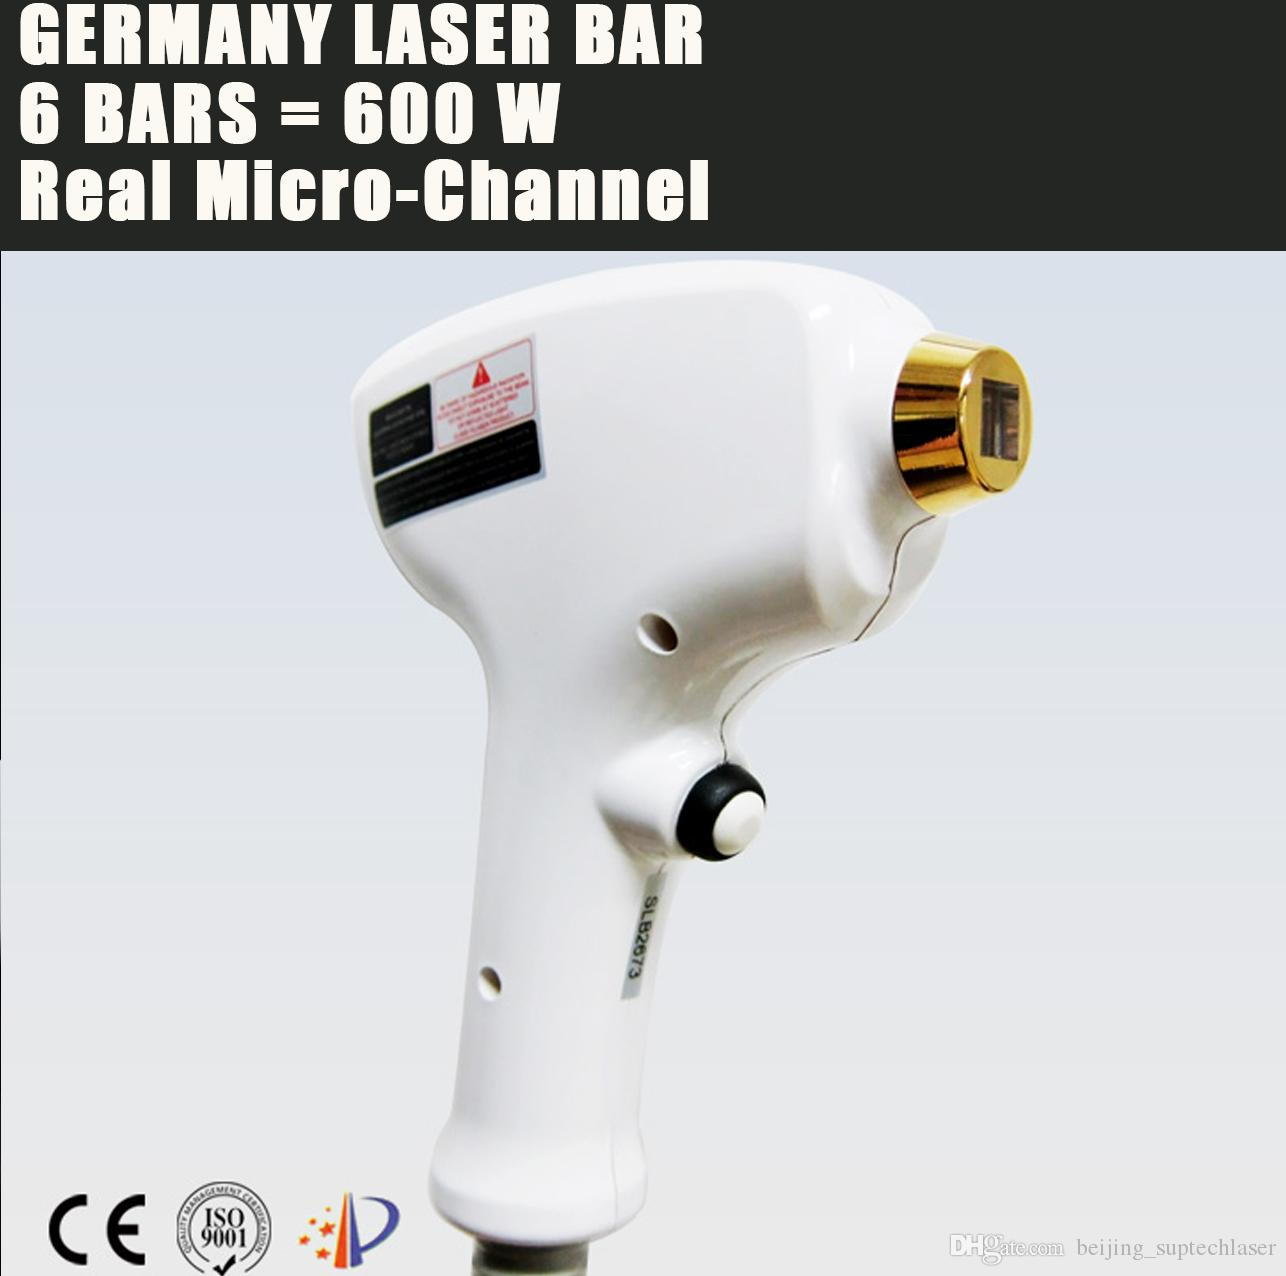 CE permanent 808nm 755nm 1064nm diode laser hair removal equipment with  germany laser bars free shipping on sale